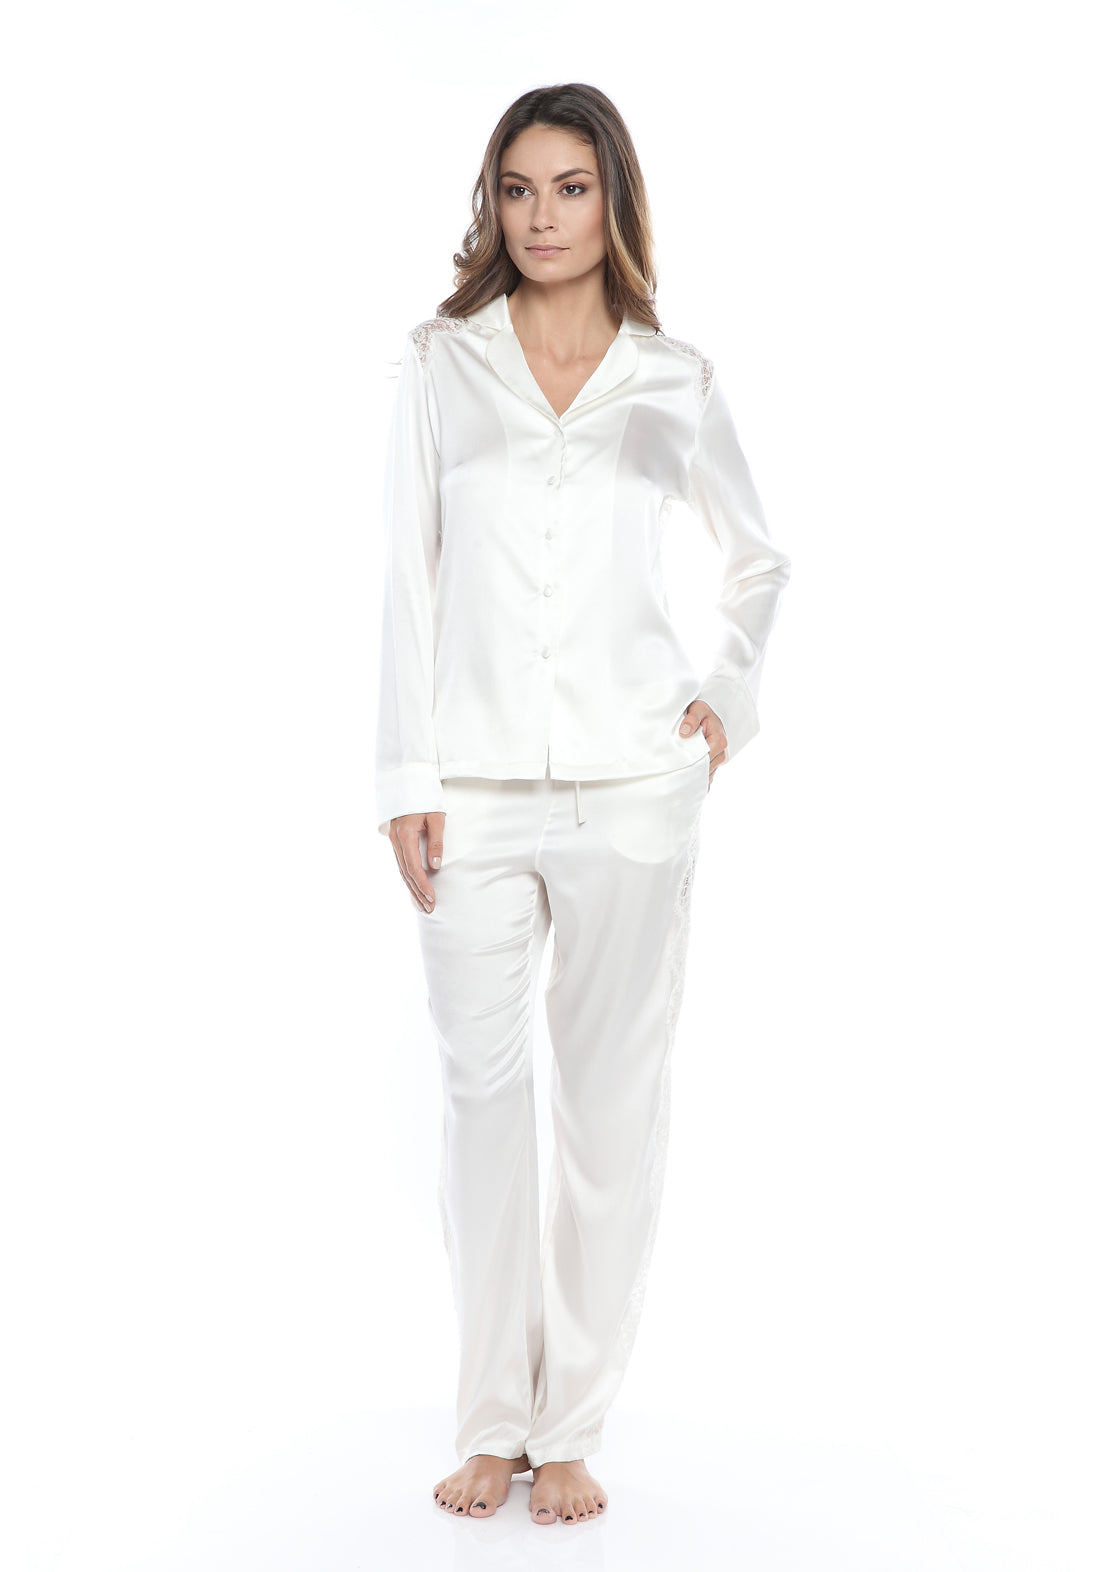 Tendresse Pajama Top in Ivory